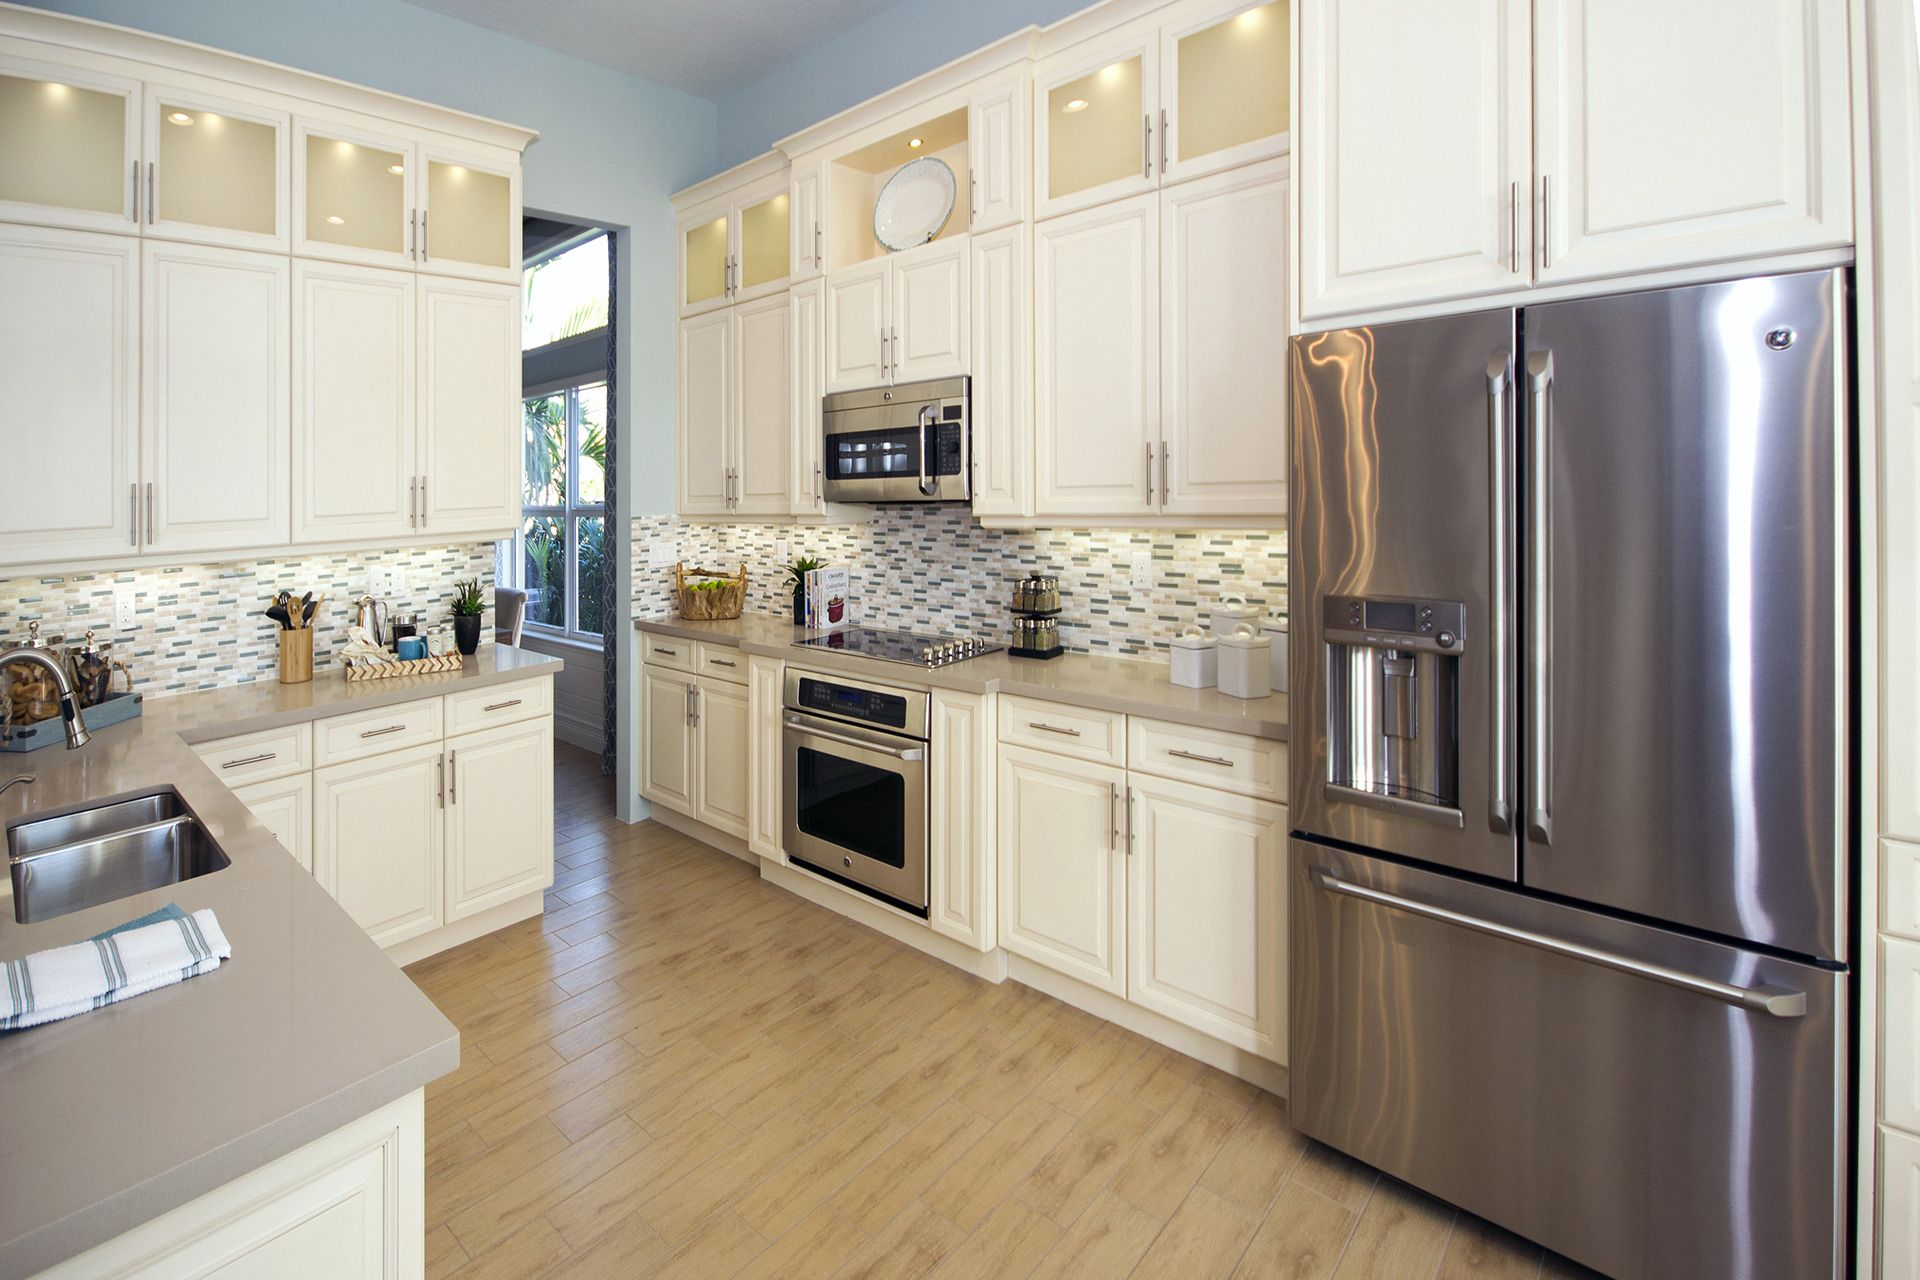 Kitchen featured in the Alexandra Grande By GL Homes in Martin-St. Lucie-Okeechobee Counties, FL